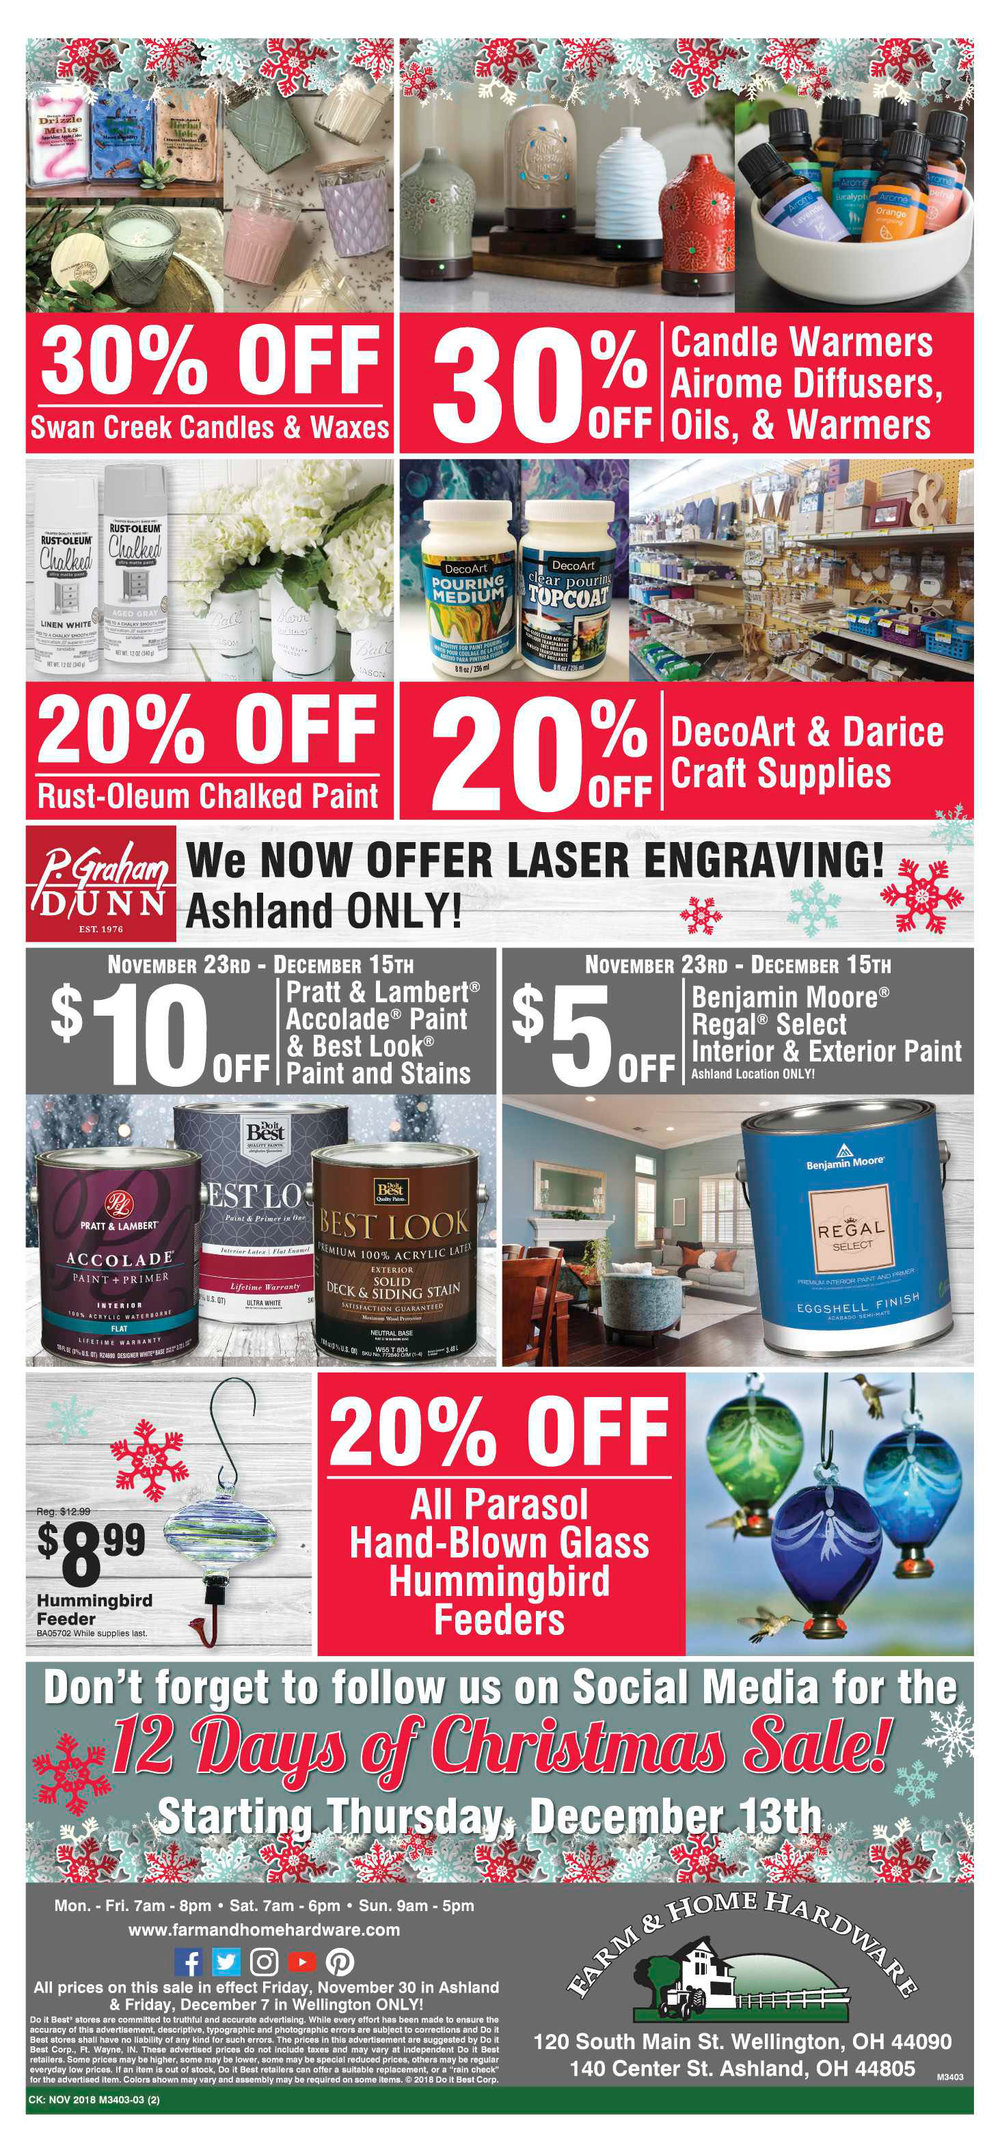 Farm & Home Hardware Ladies Night Out 2018 Pg. 2